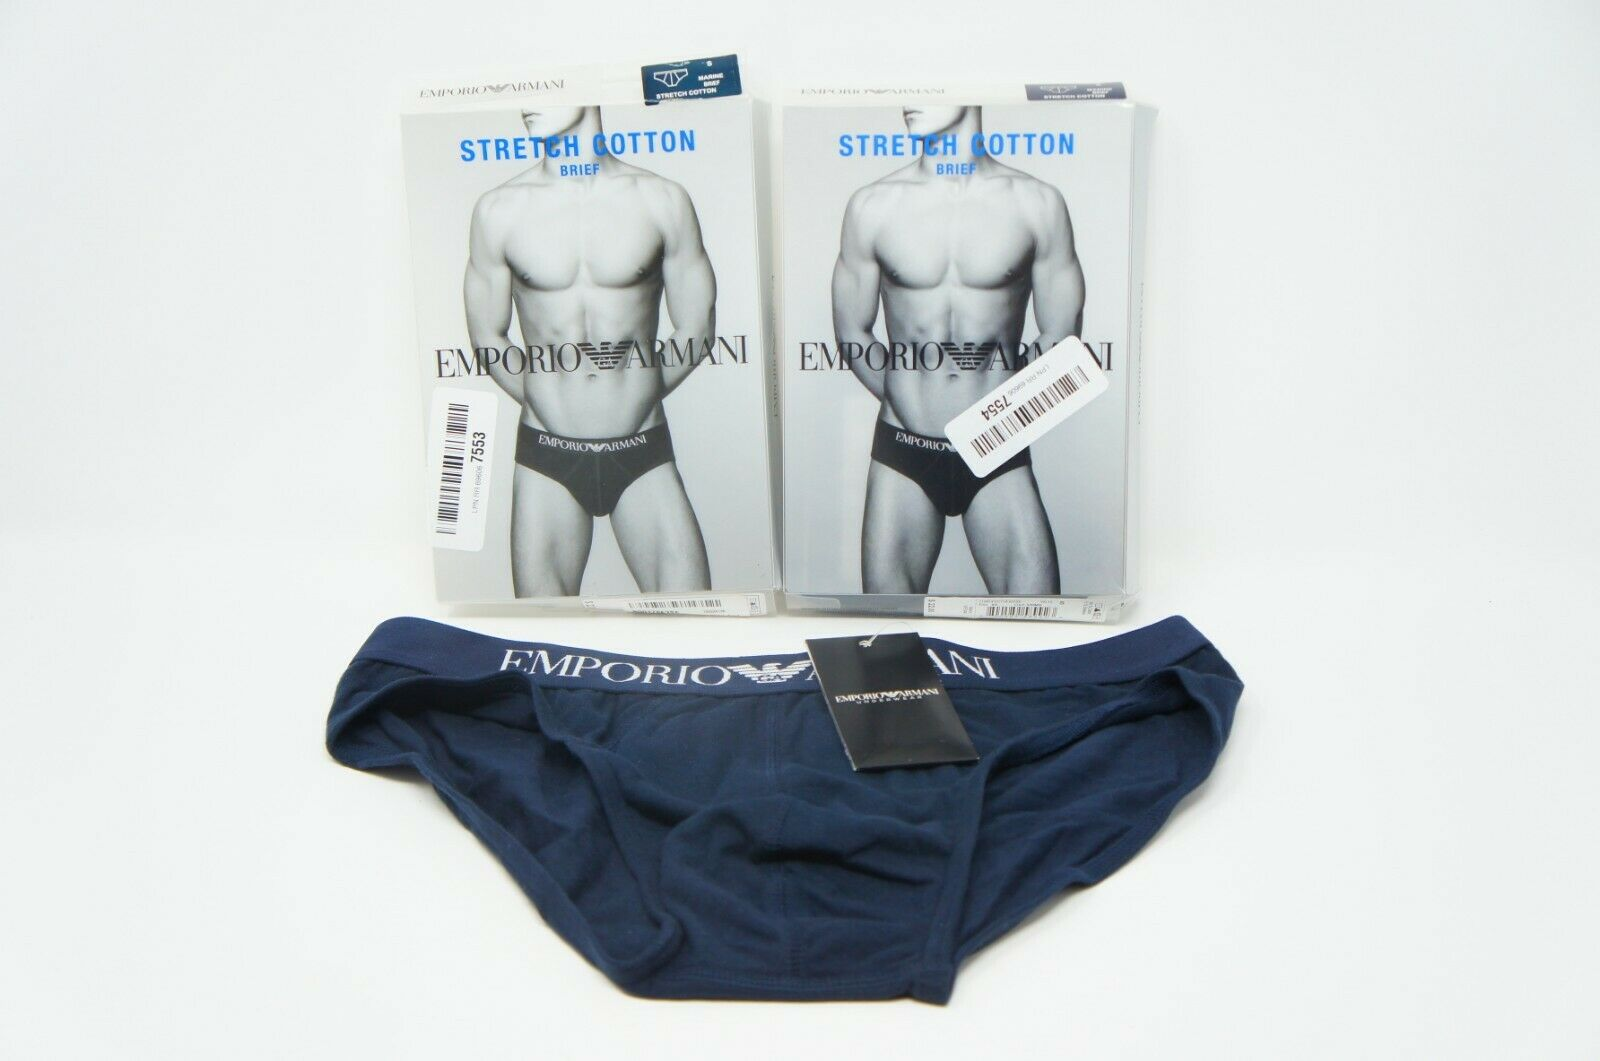 Emporio Armani Men's Cotton Stetch Brief SMALL 2 PACK